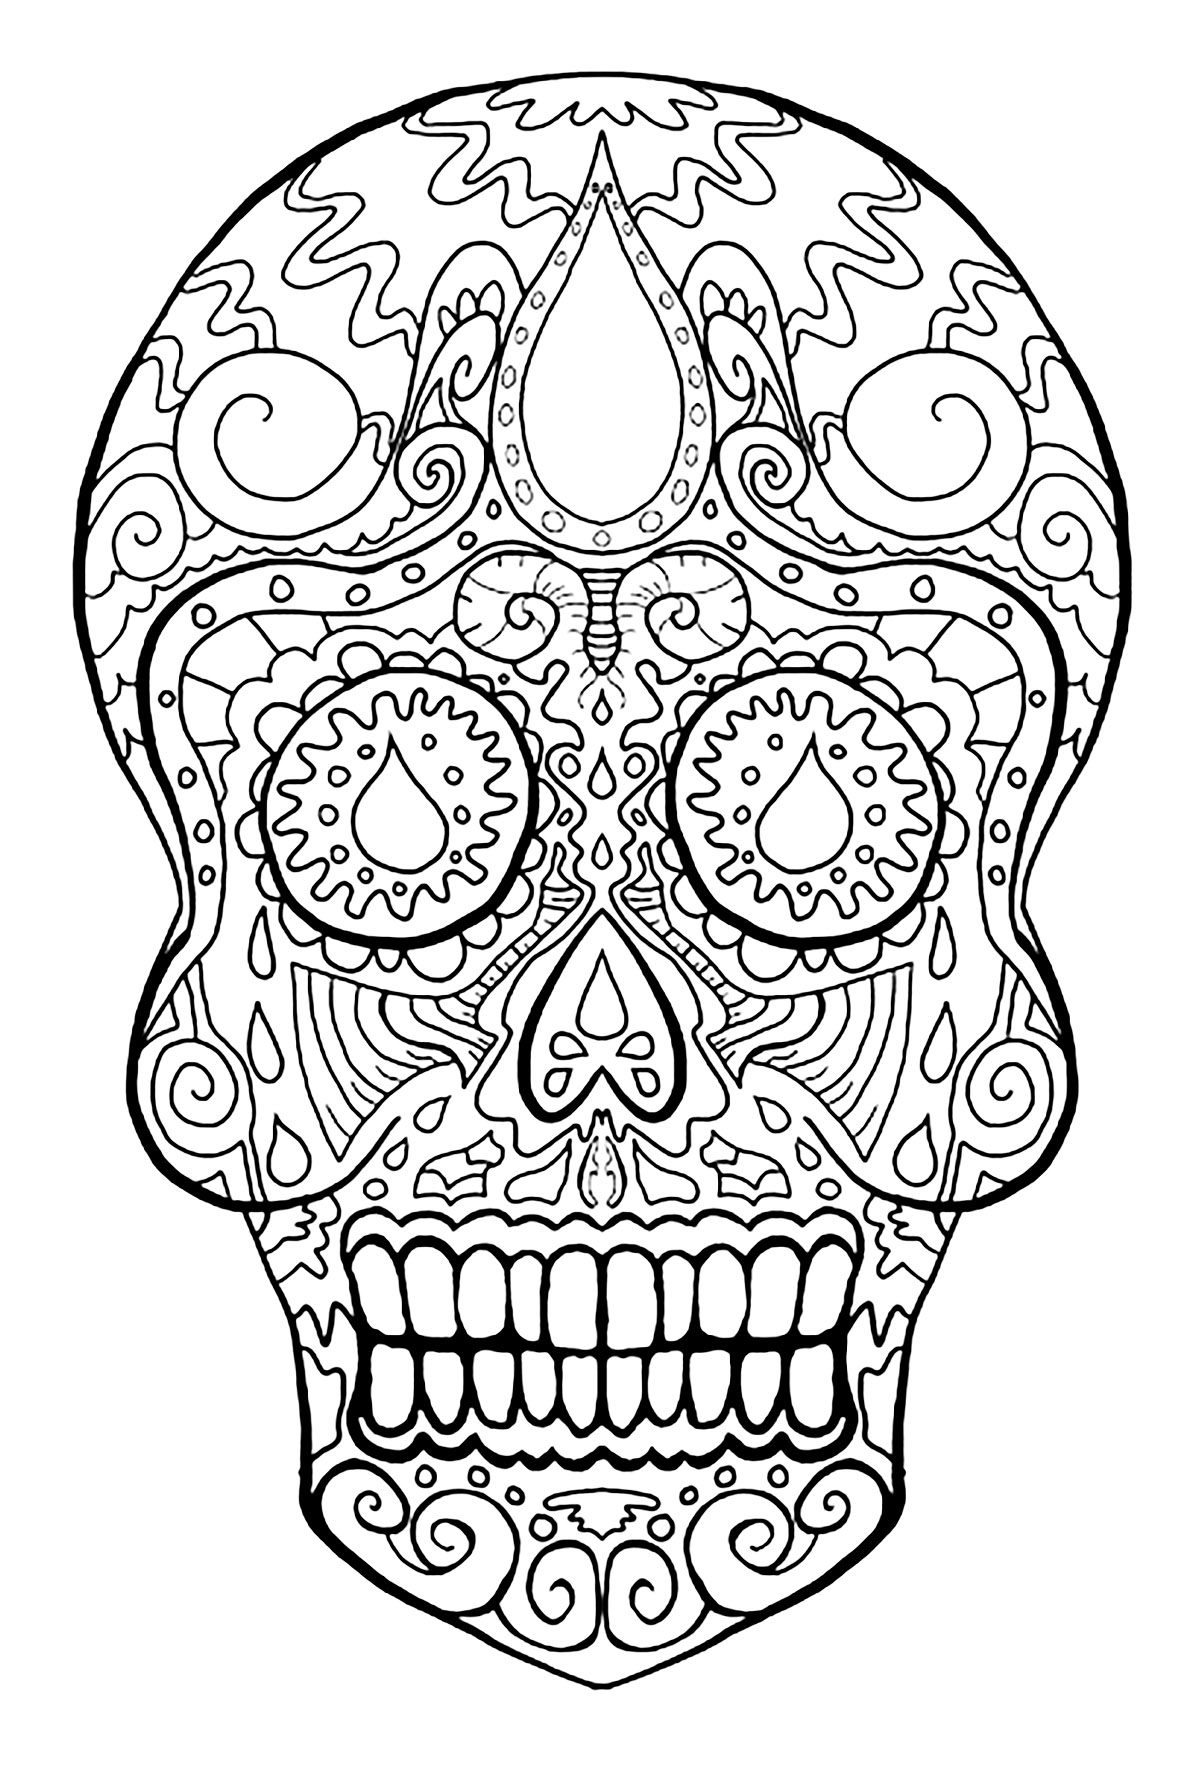 coloring skull bones coloring pages skull free printable coloring pages skull coloring bones